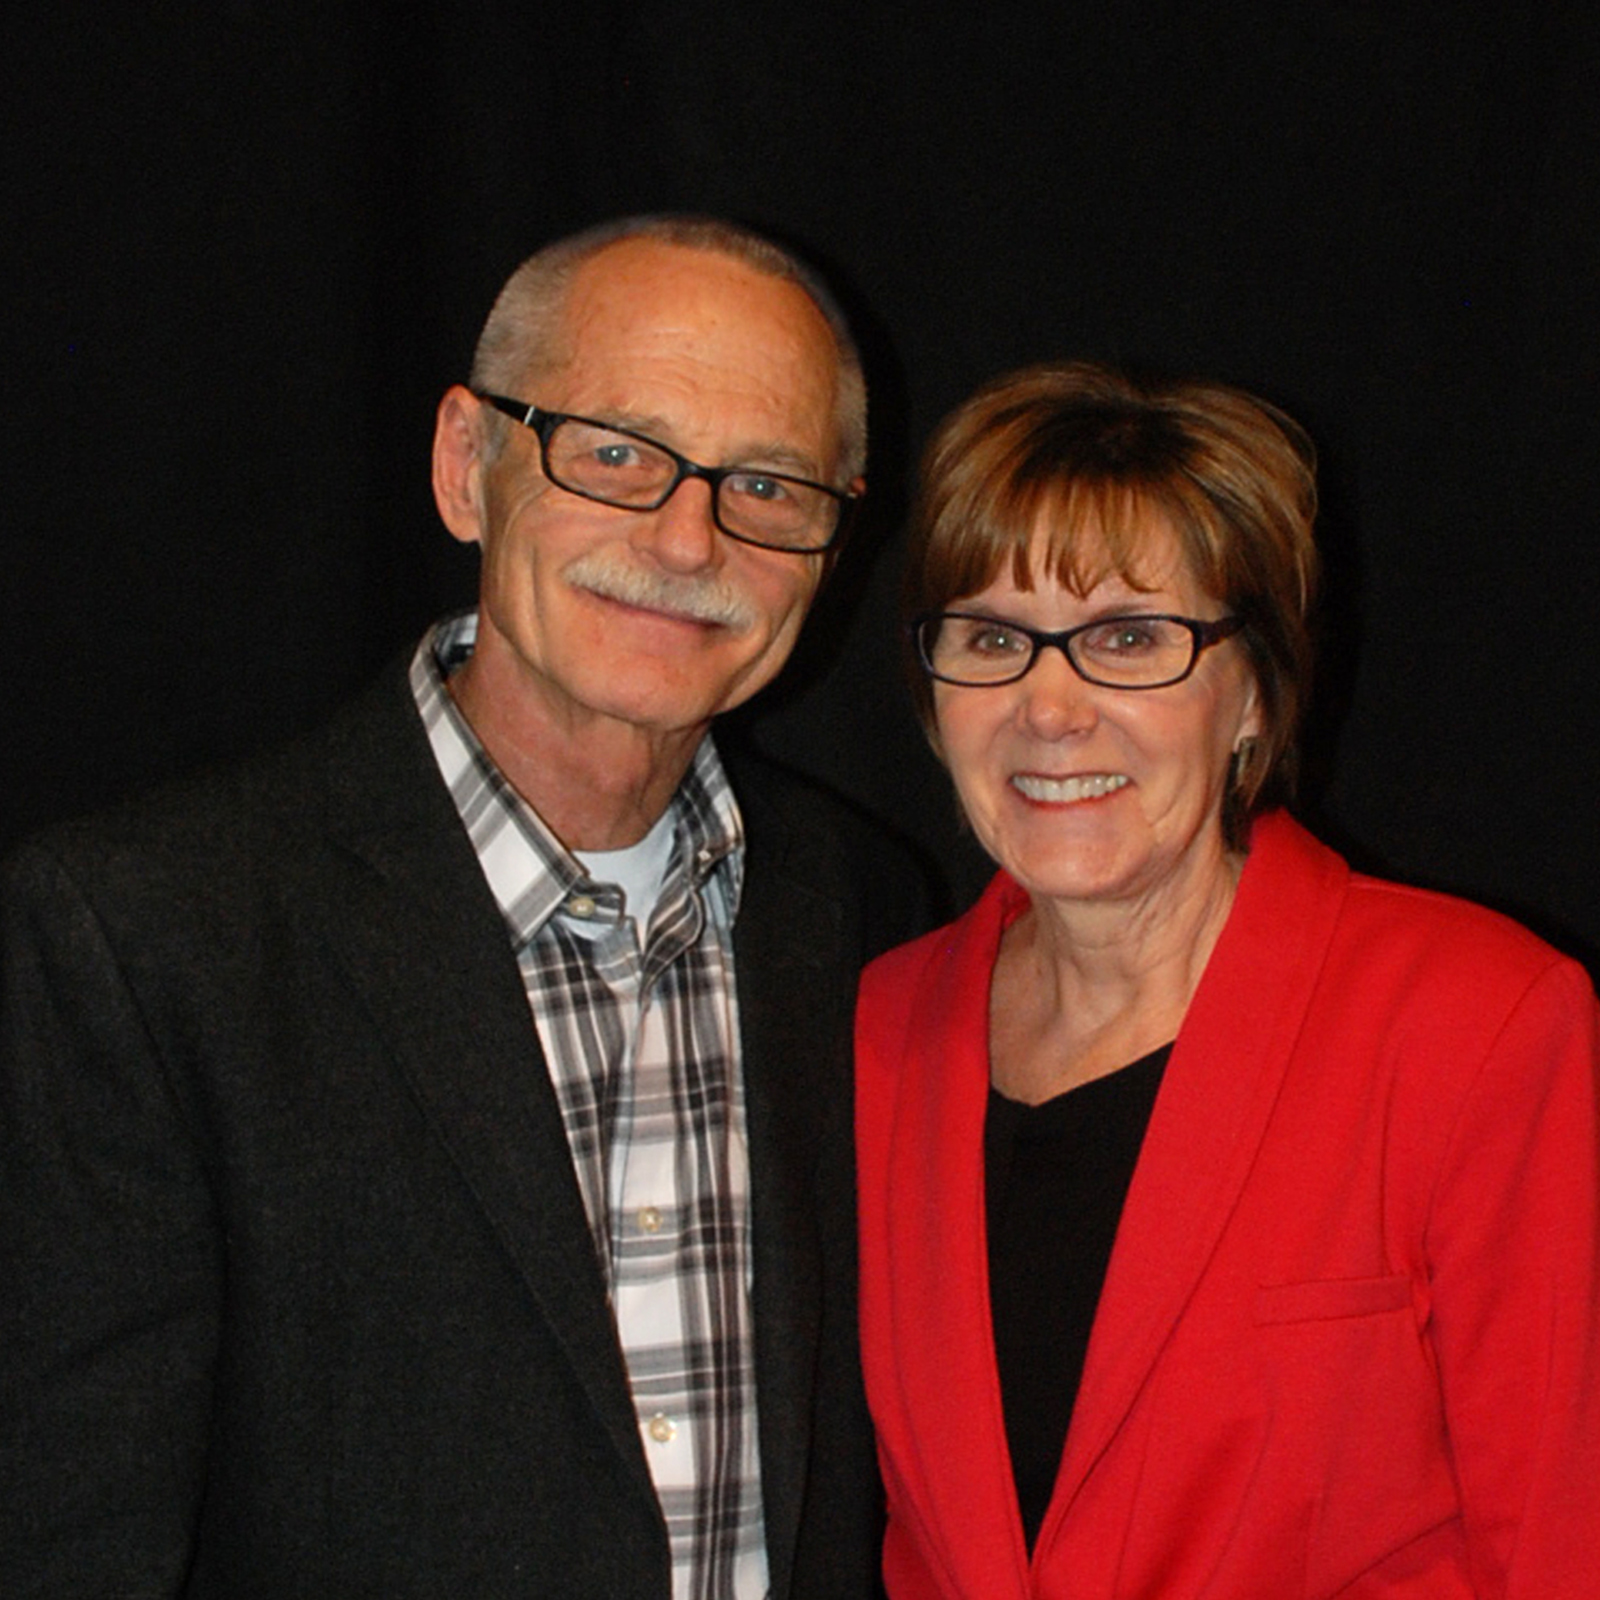 Pastor Mark and Pam Biel